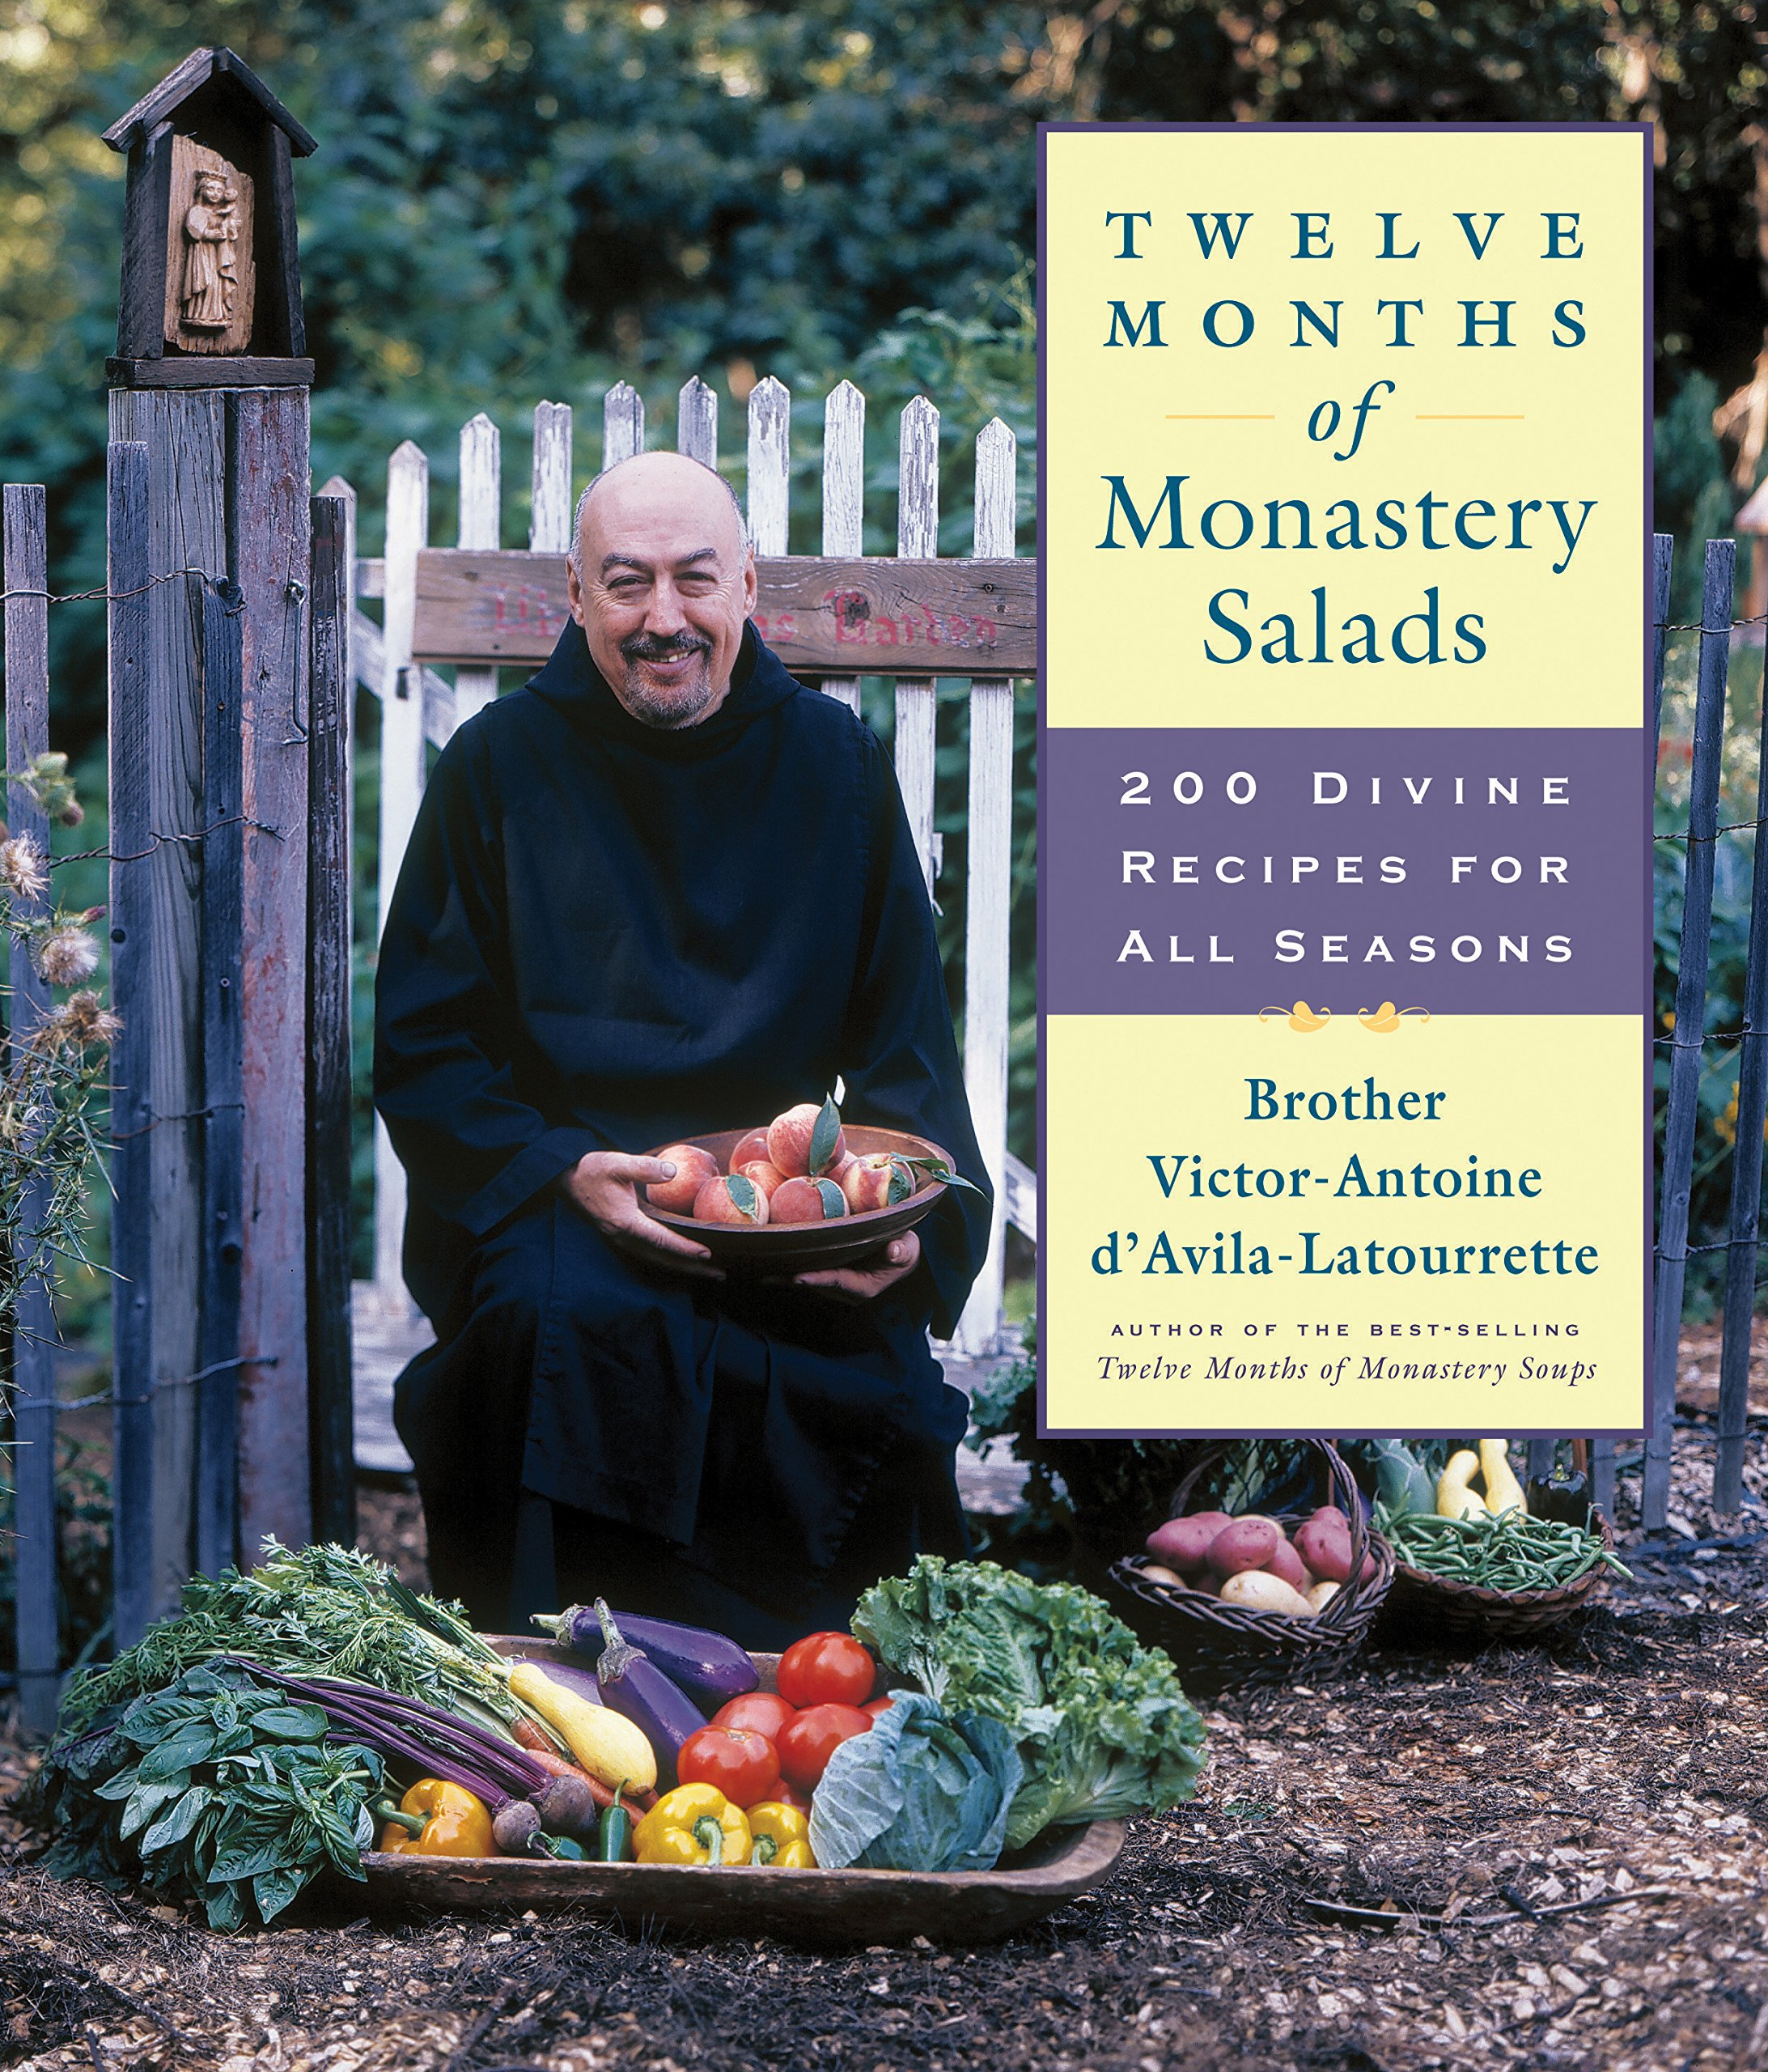 Twelve Months of Monastery Salads: 200 Divine Recipes for All Seasons PDF